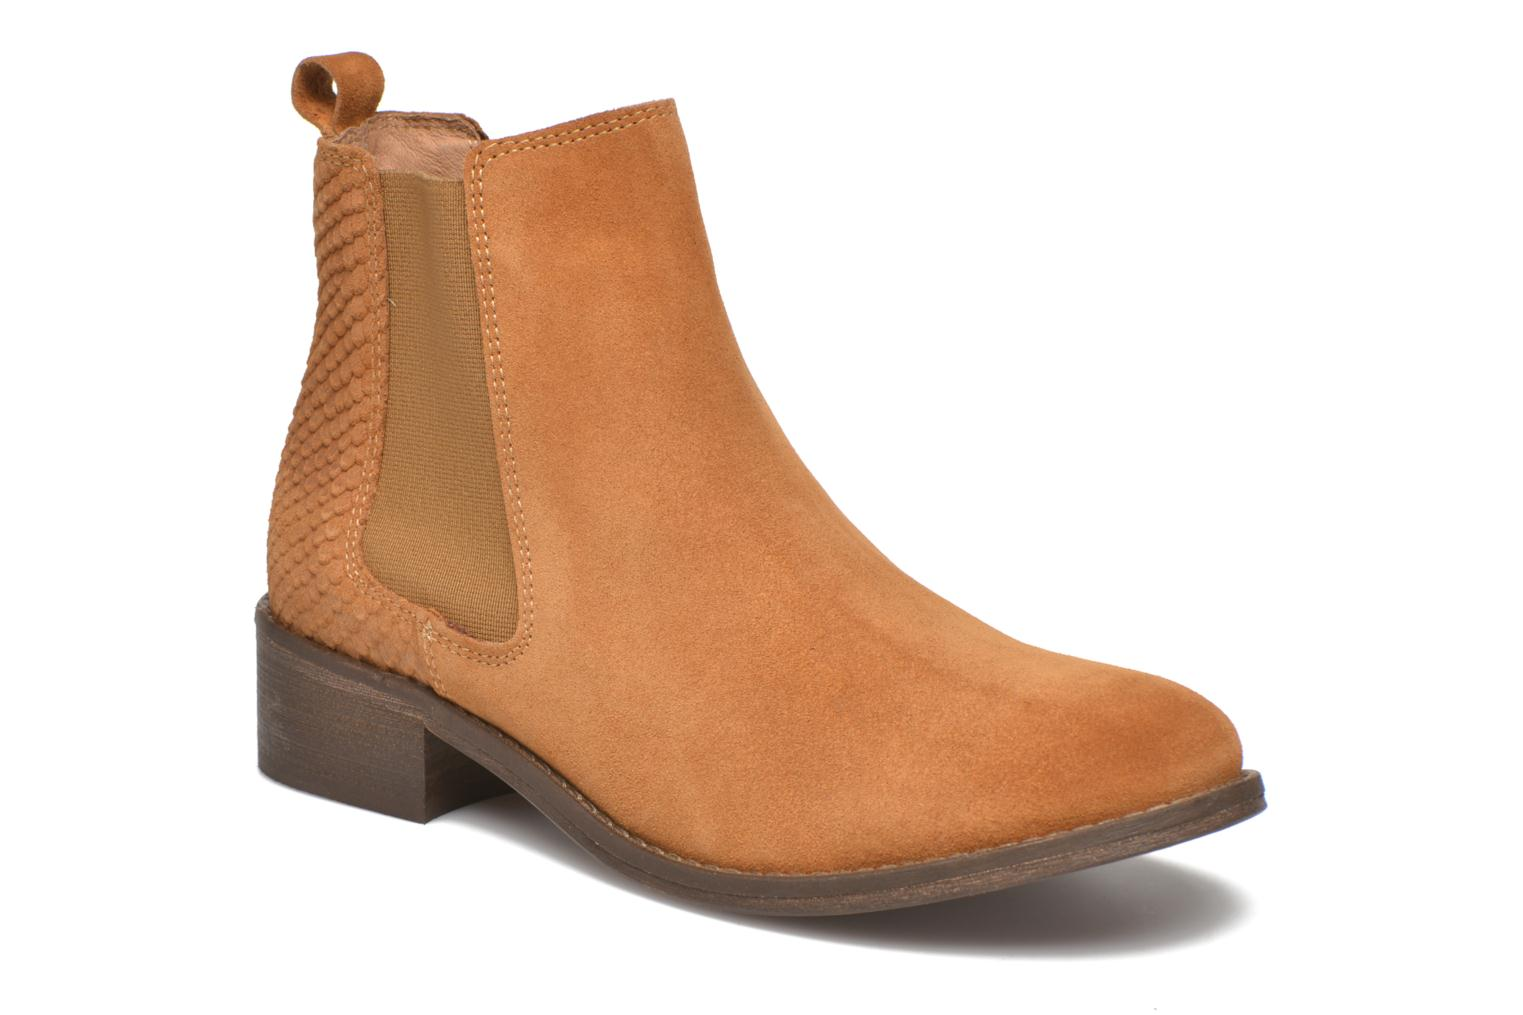 Boots Elastiques by BensimonRebajas - 30%